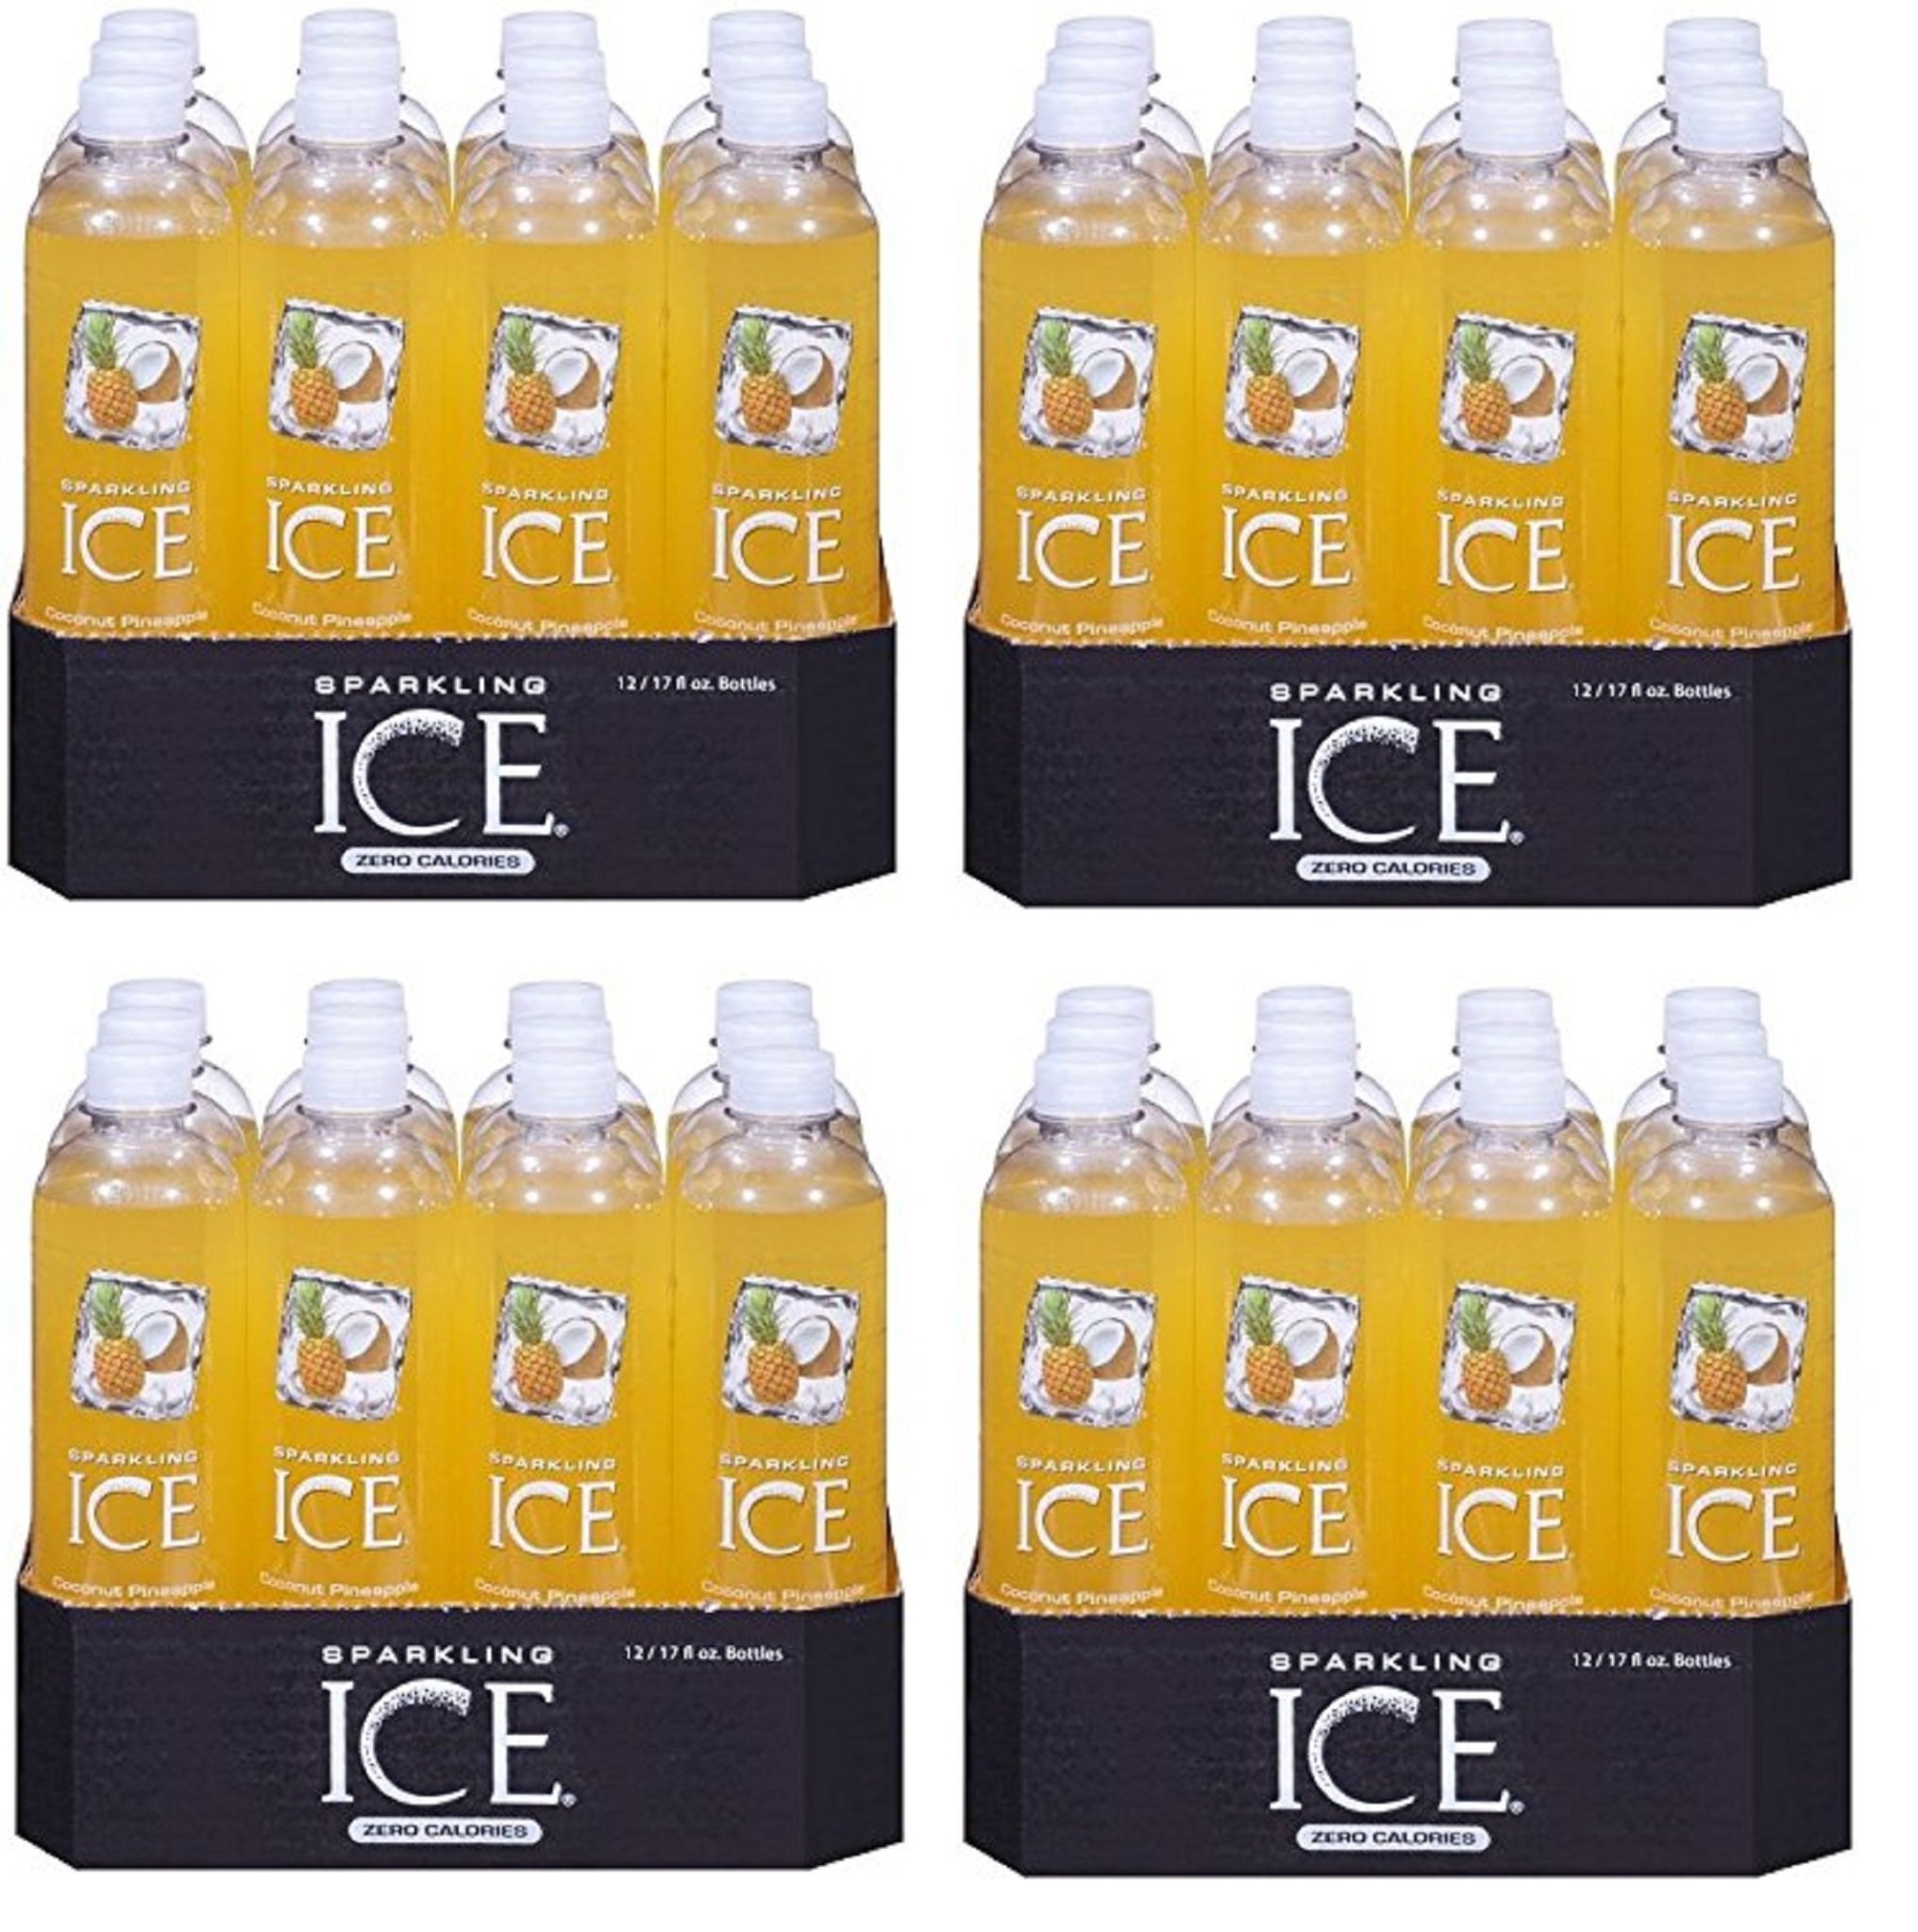 Sparkling Ice, YlGwXb 48 Pack (Coconut Pineapple, 17 Ounce Bottles)